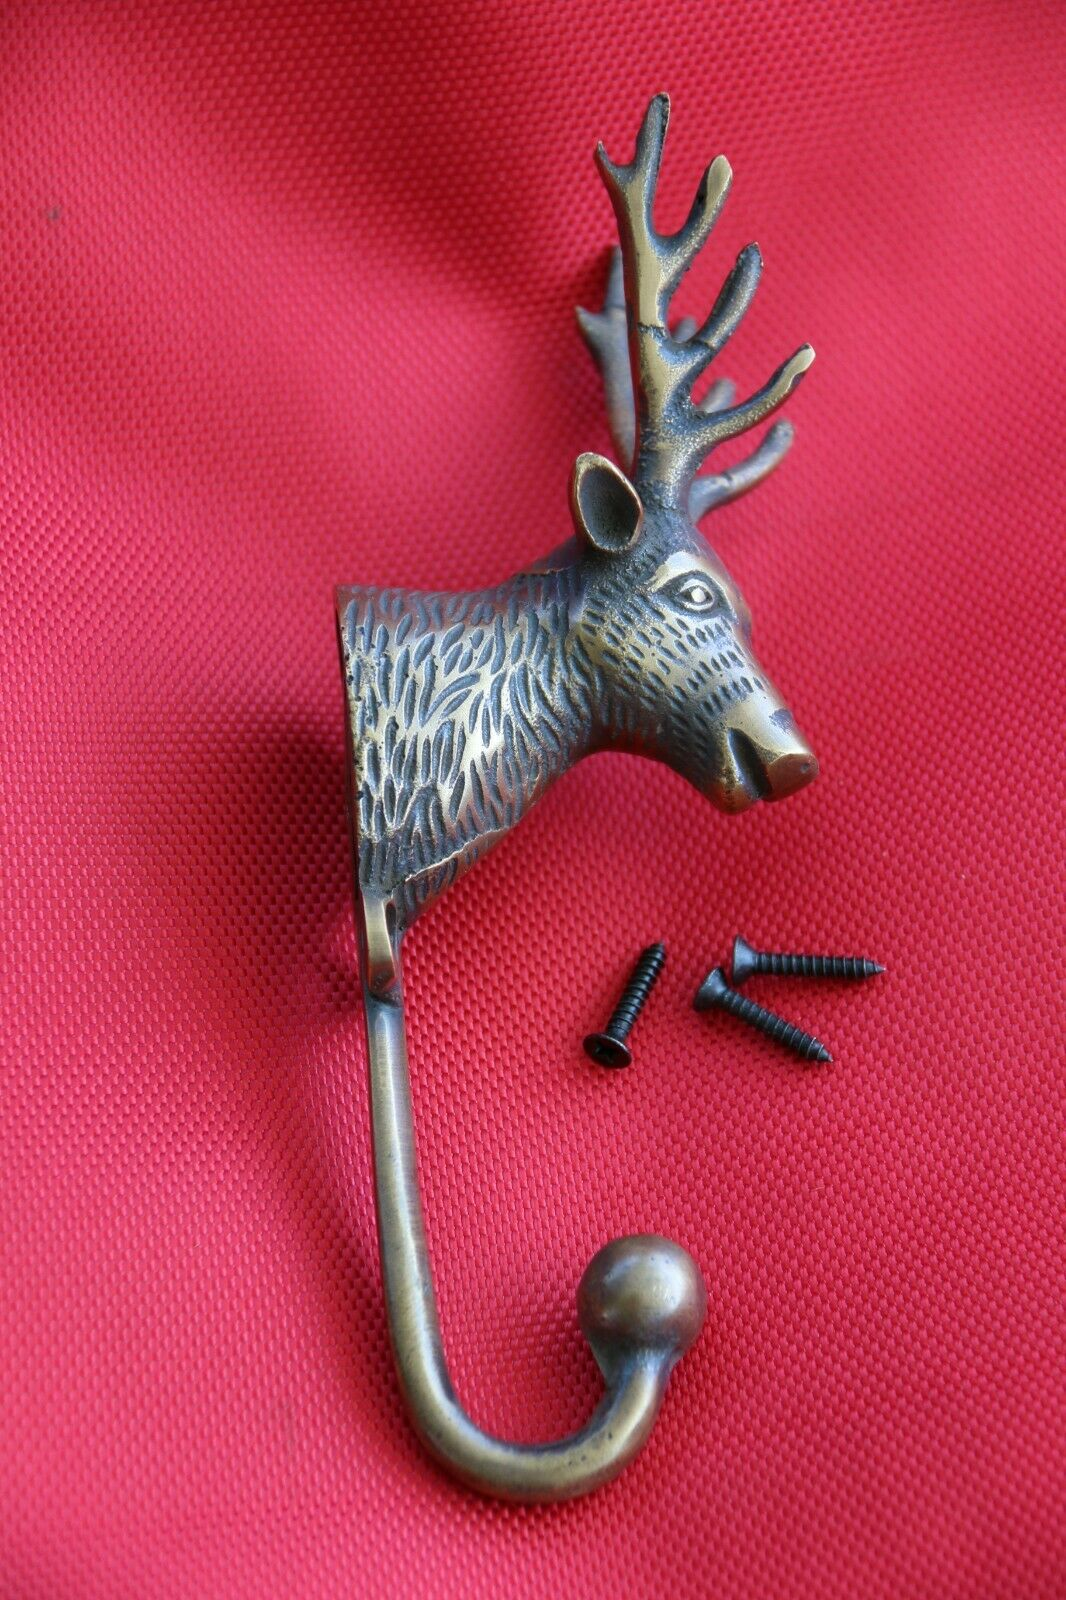 New BRASS Deer Hook - Decorative Wall Hook - Furniture Fittings & Acces.